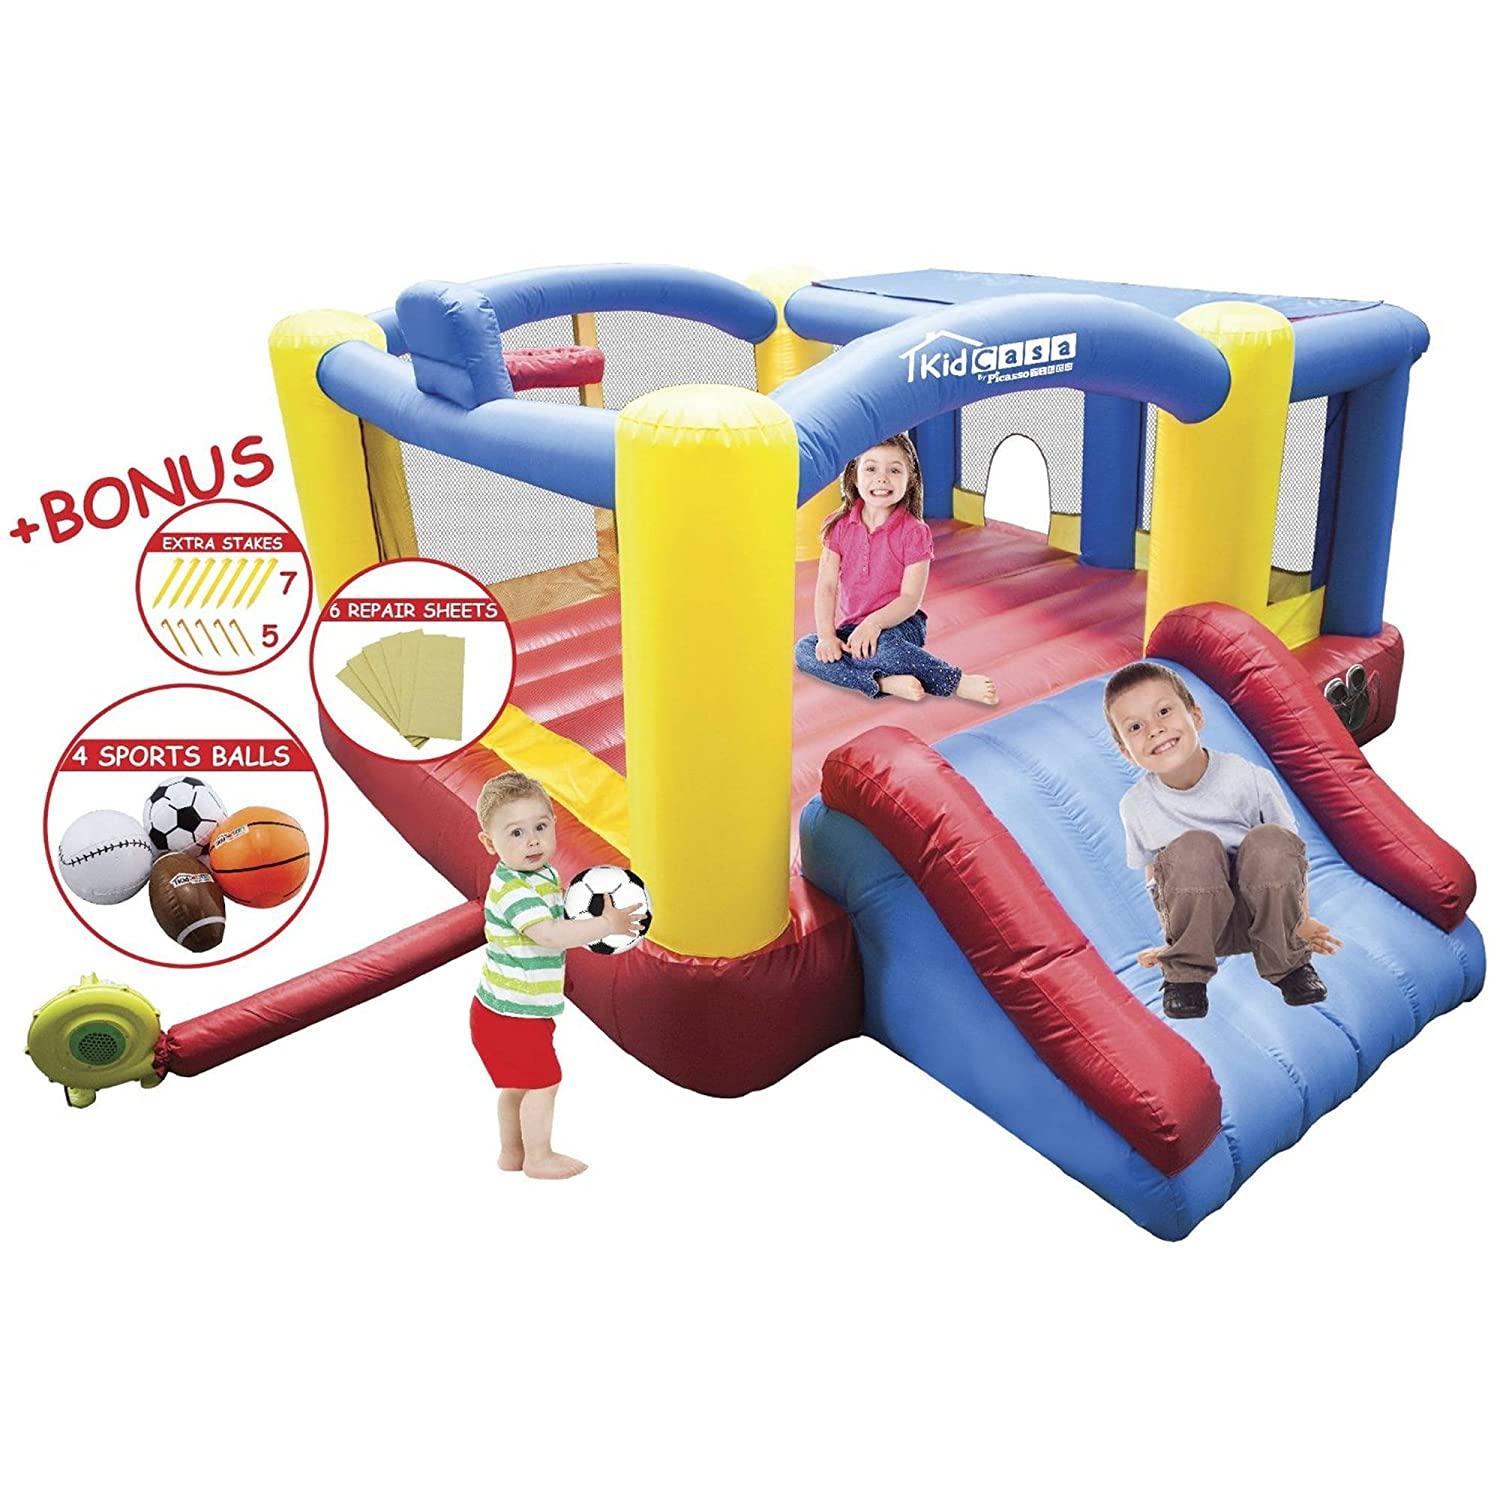 PicassoTiles [Upgrade Version] KC102 12x10 Foot Inflatable Bouncer Jumping Bouncing House, Jump Slide, Dunk Playhouse w/ Basketball Rim, 4 Sports Balls, Full Size Entry, Extended Slider, 525W Blower